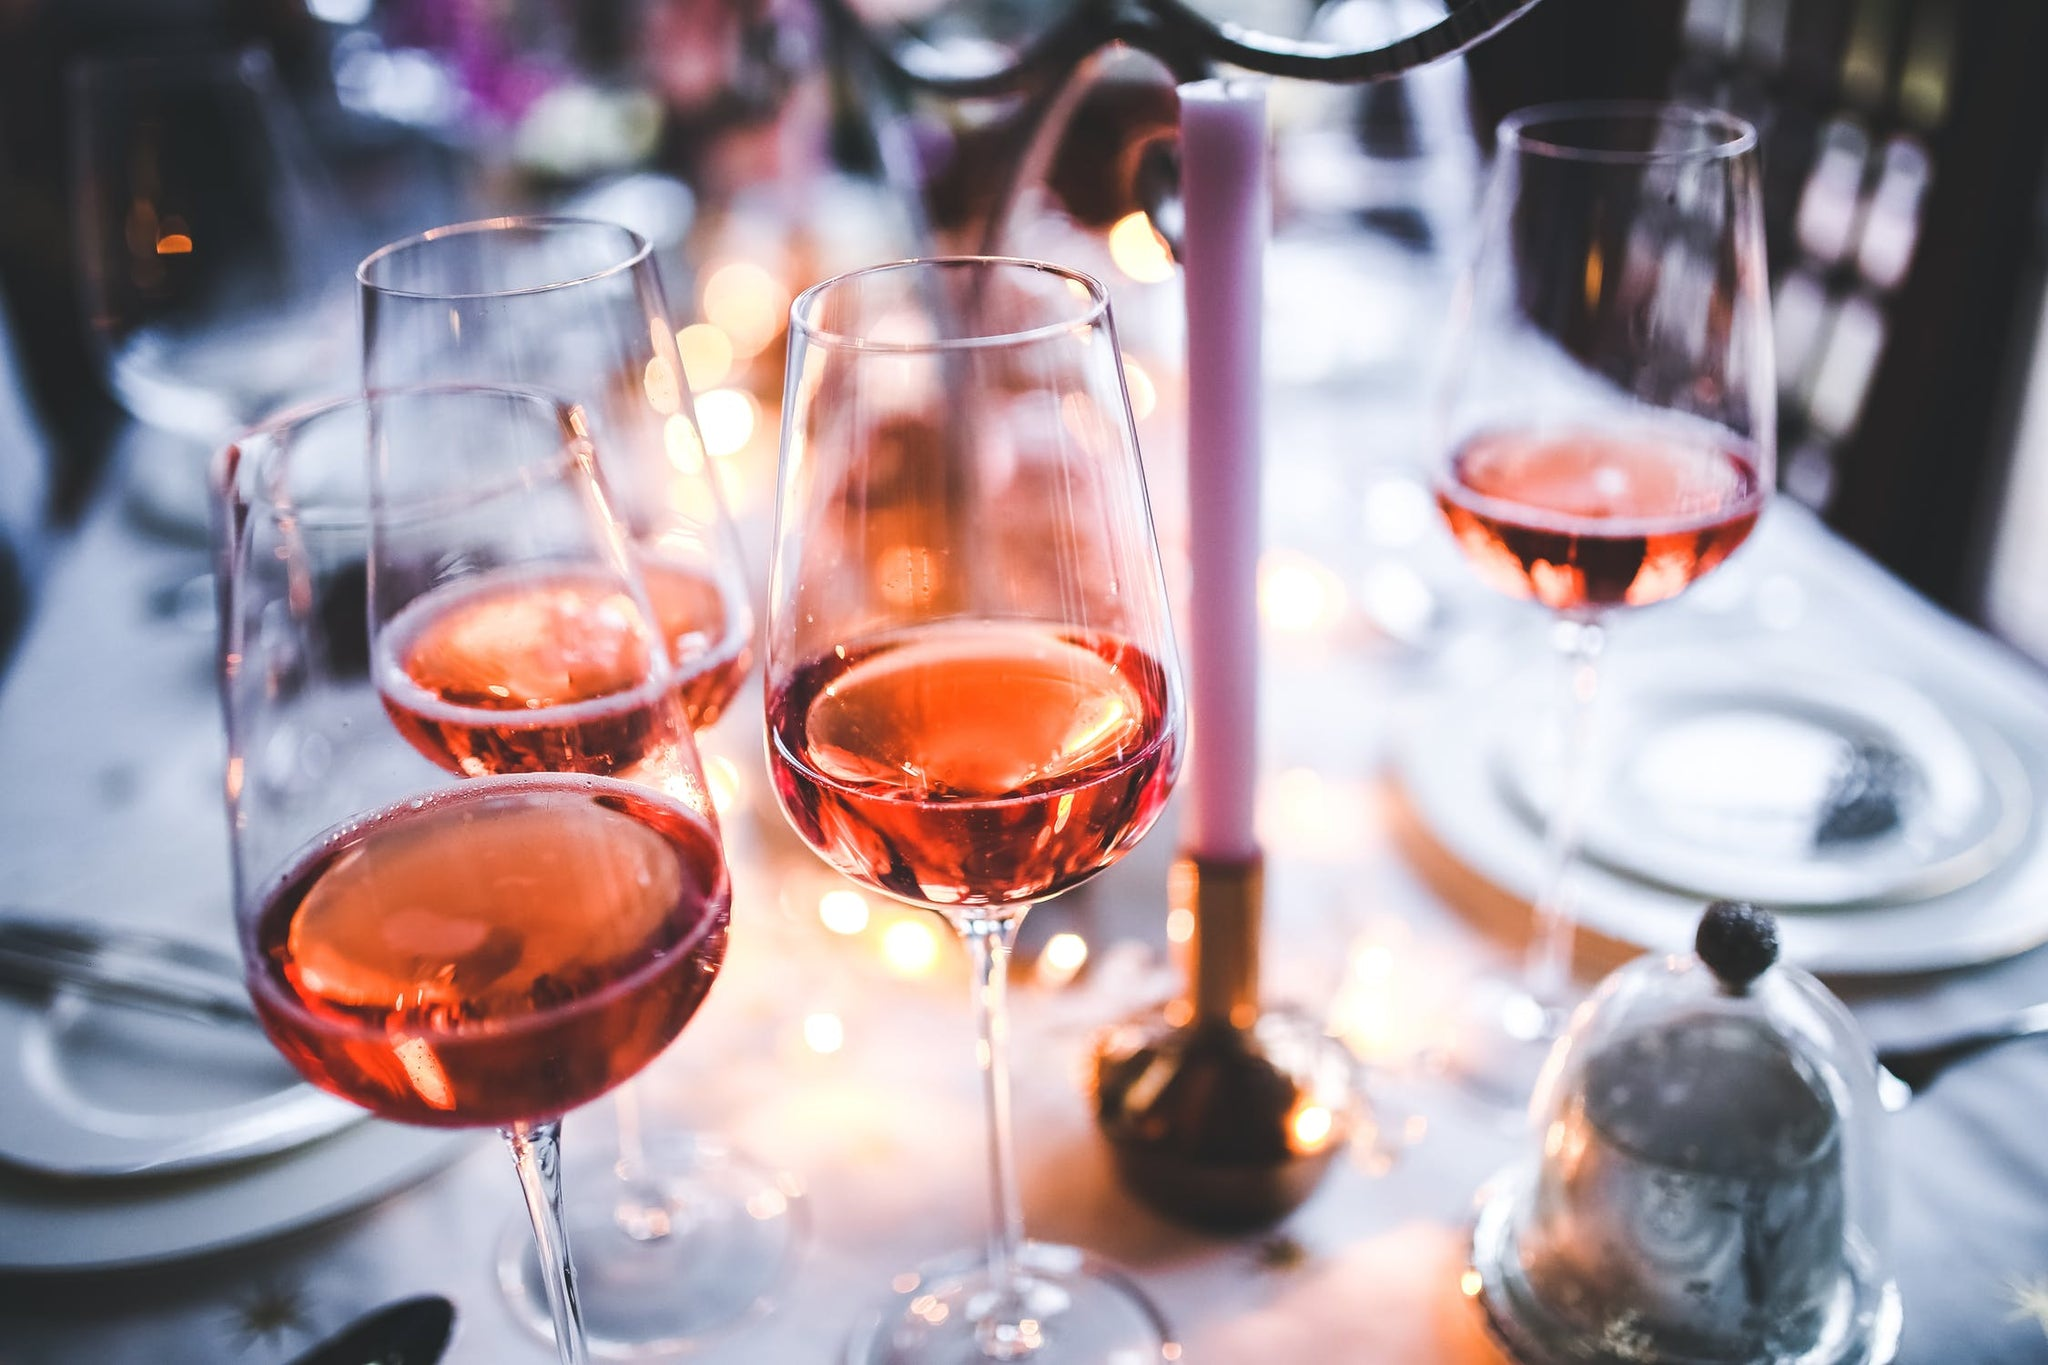 Celebrate Spring with These Delicious Rosé Champagne Food Pairings